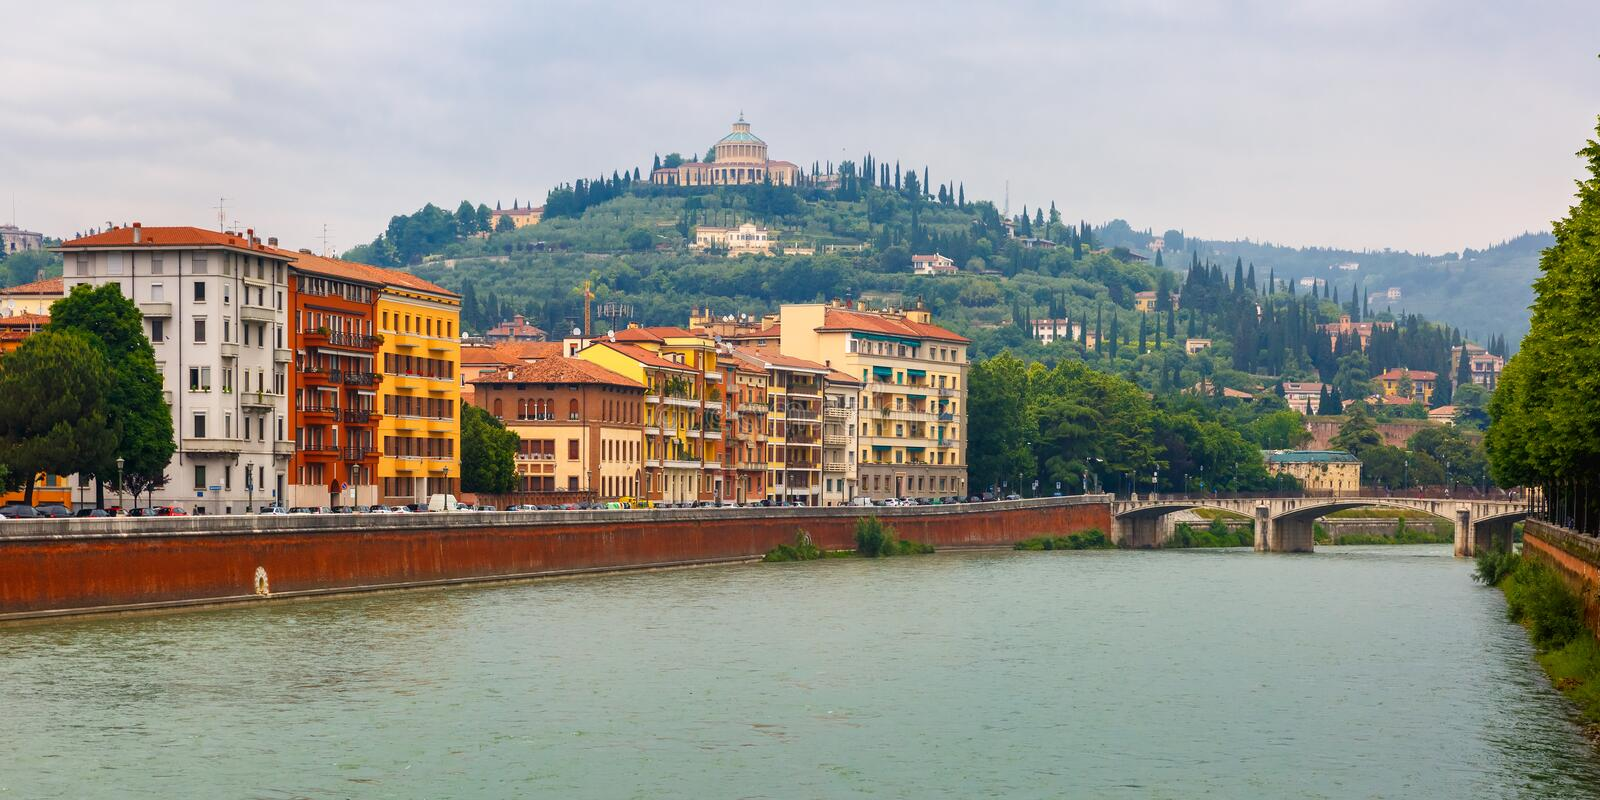 Adige River Embankment in Verona, Italy royalty free stock photography